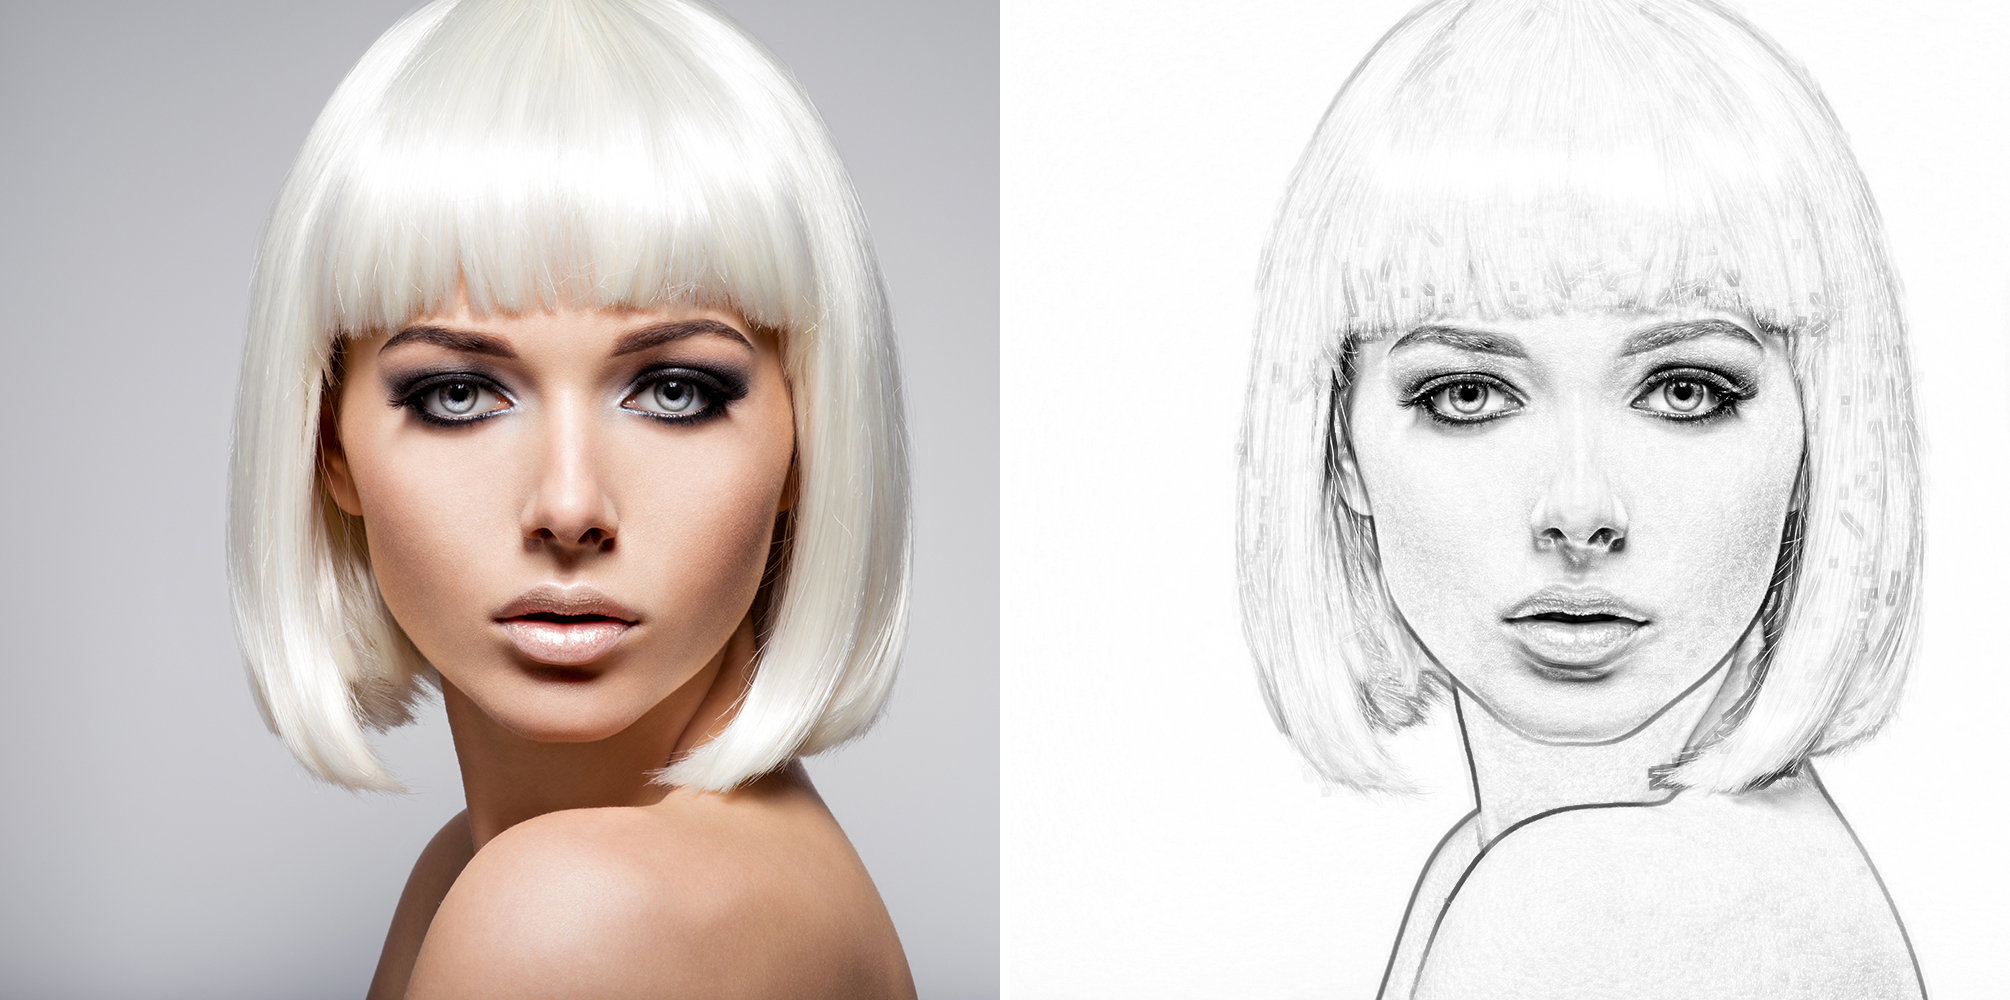 44 Sketch Photoshop Actions Collection (Action for photoshop CS5,CS6,CC) example image 2